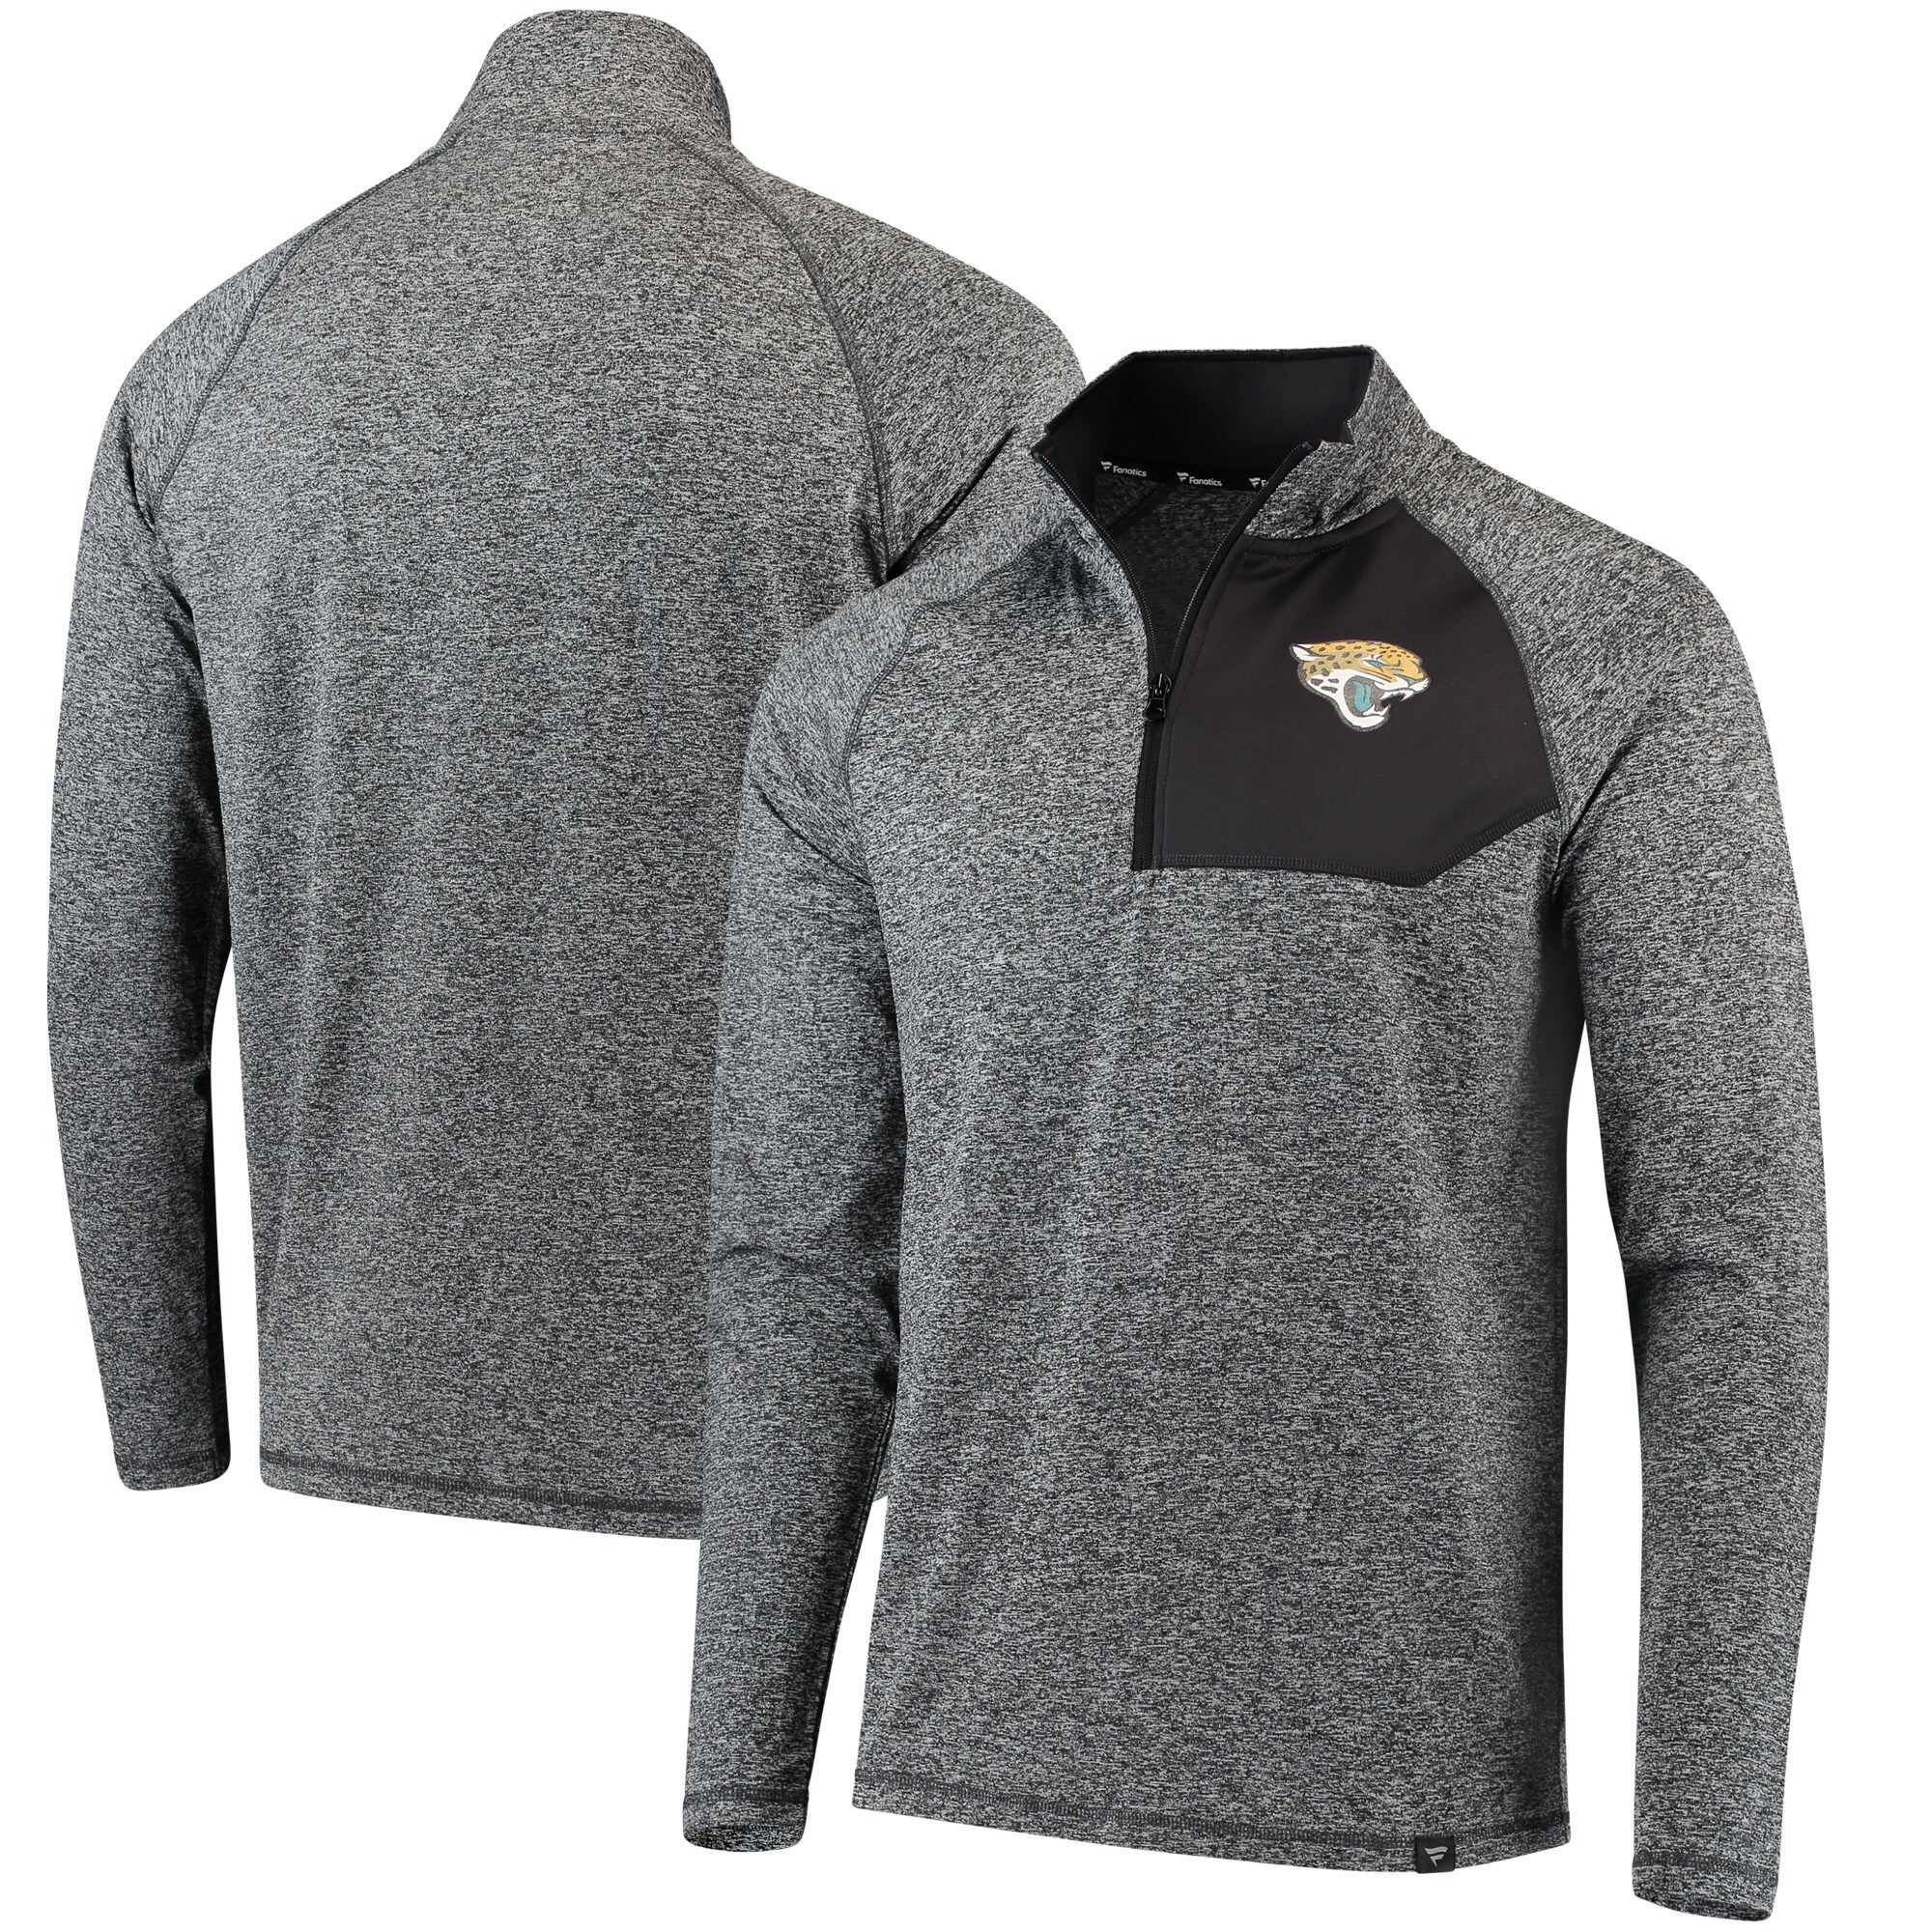 Jacksonville Jaguars NFL Pro Line by Fanatics Branded Static Synthetic Quarter-Zip Pullover Jacket - Heathered Charcoal